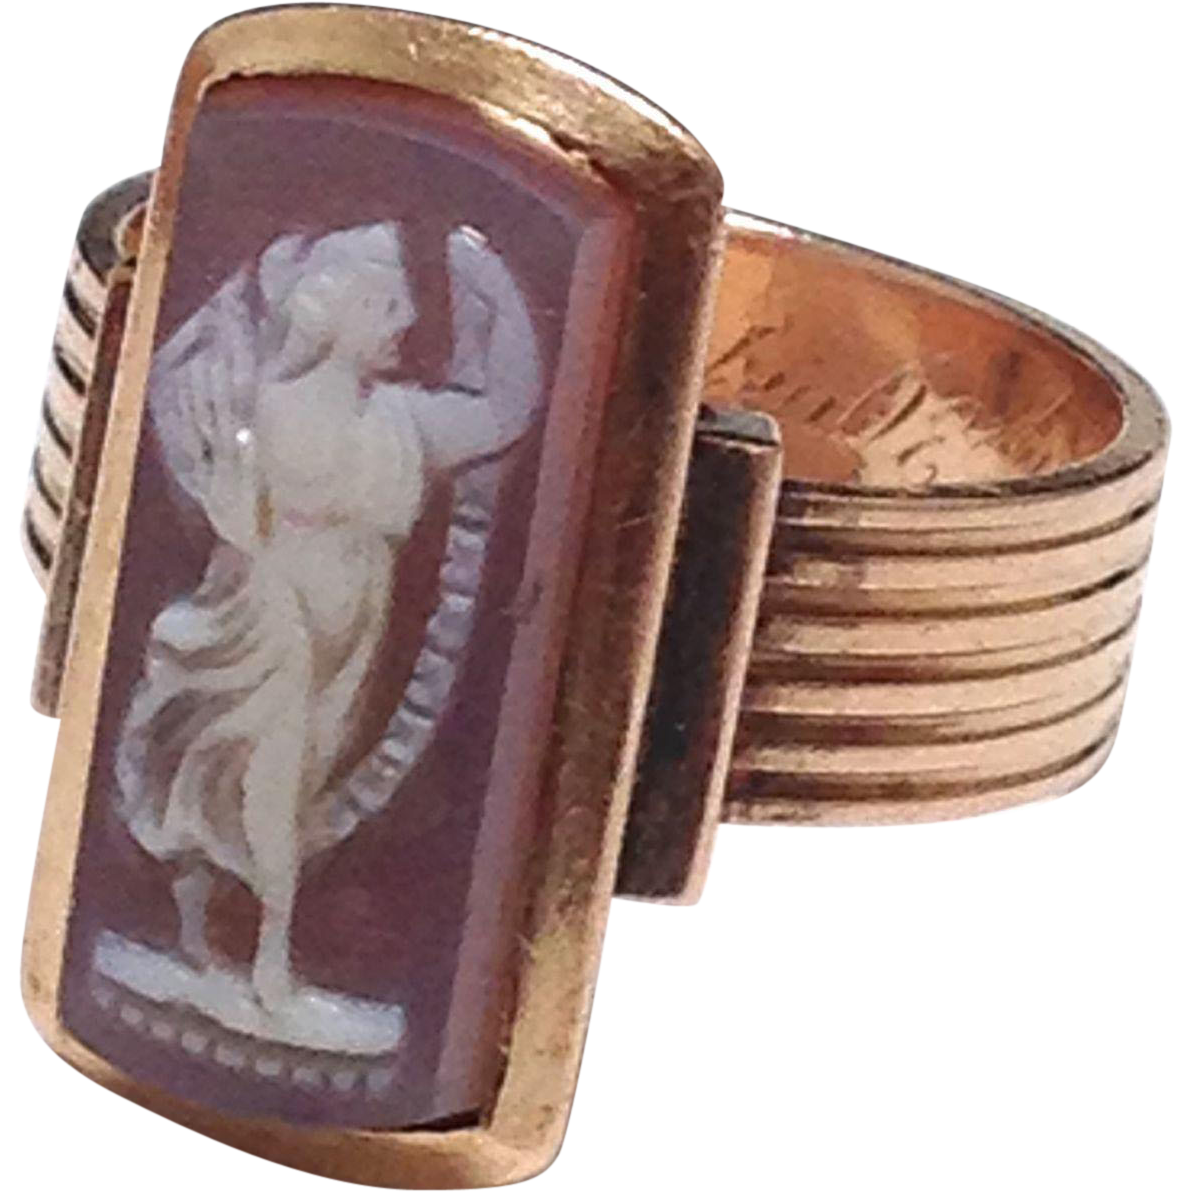 Antique Victorian Mourning Rose gold Sardonyx Figural Cameo ring with 1875 Inscription